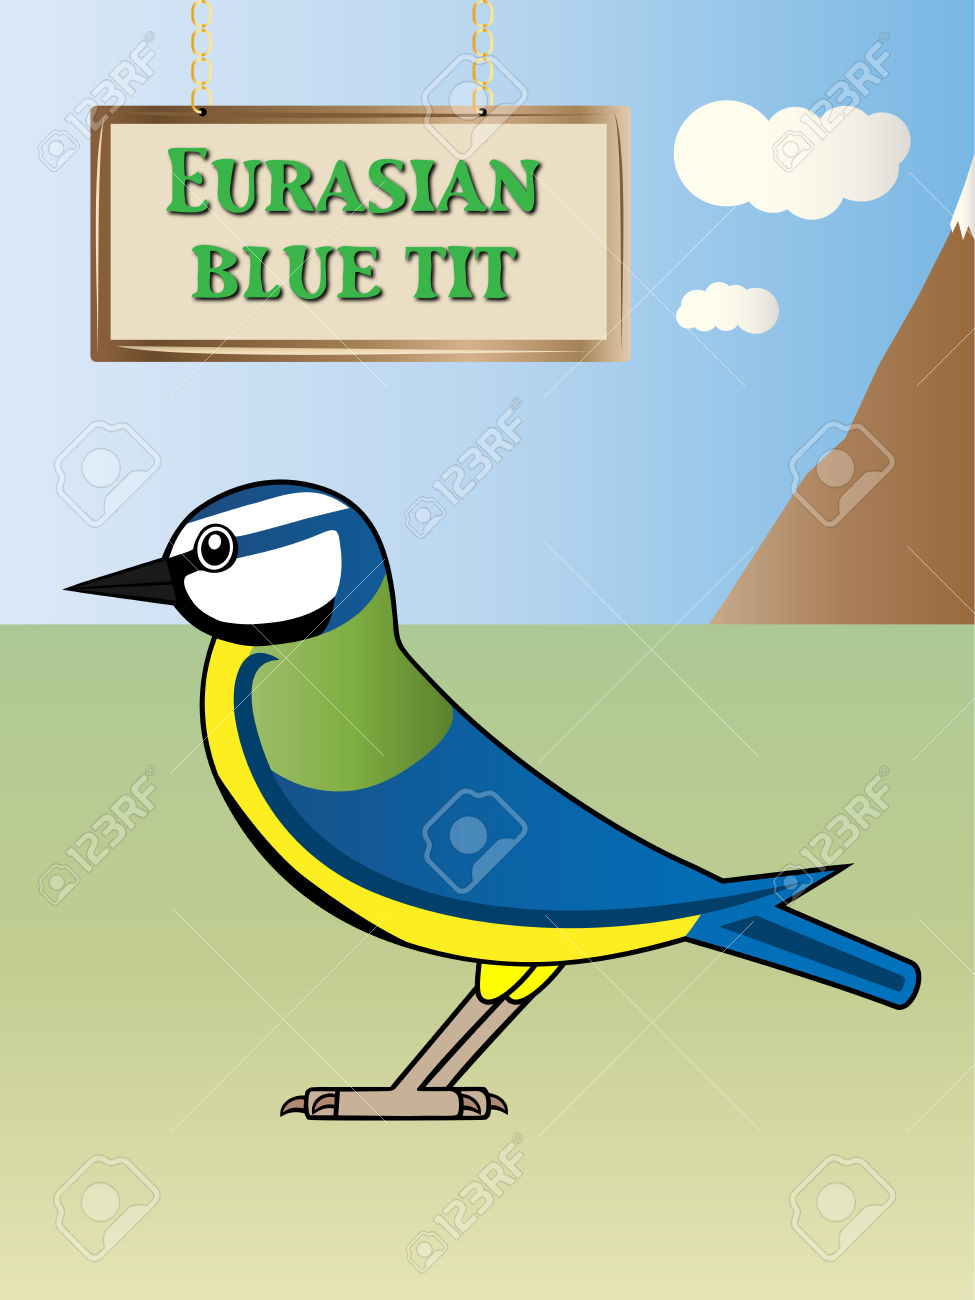 Eurasian Blue Tit clipart #4, Download drawings